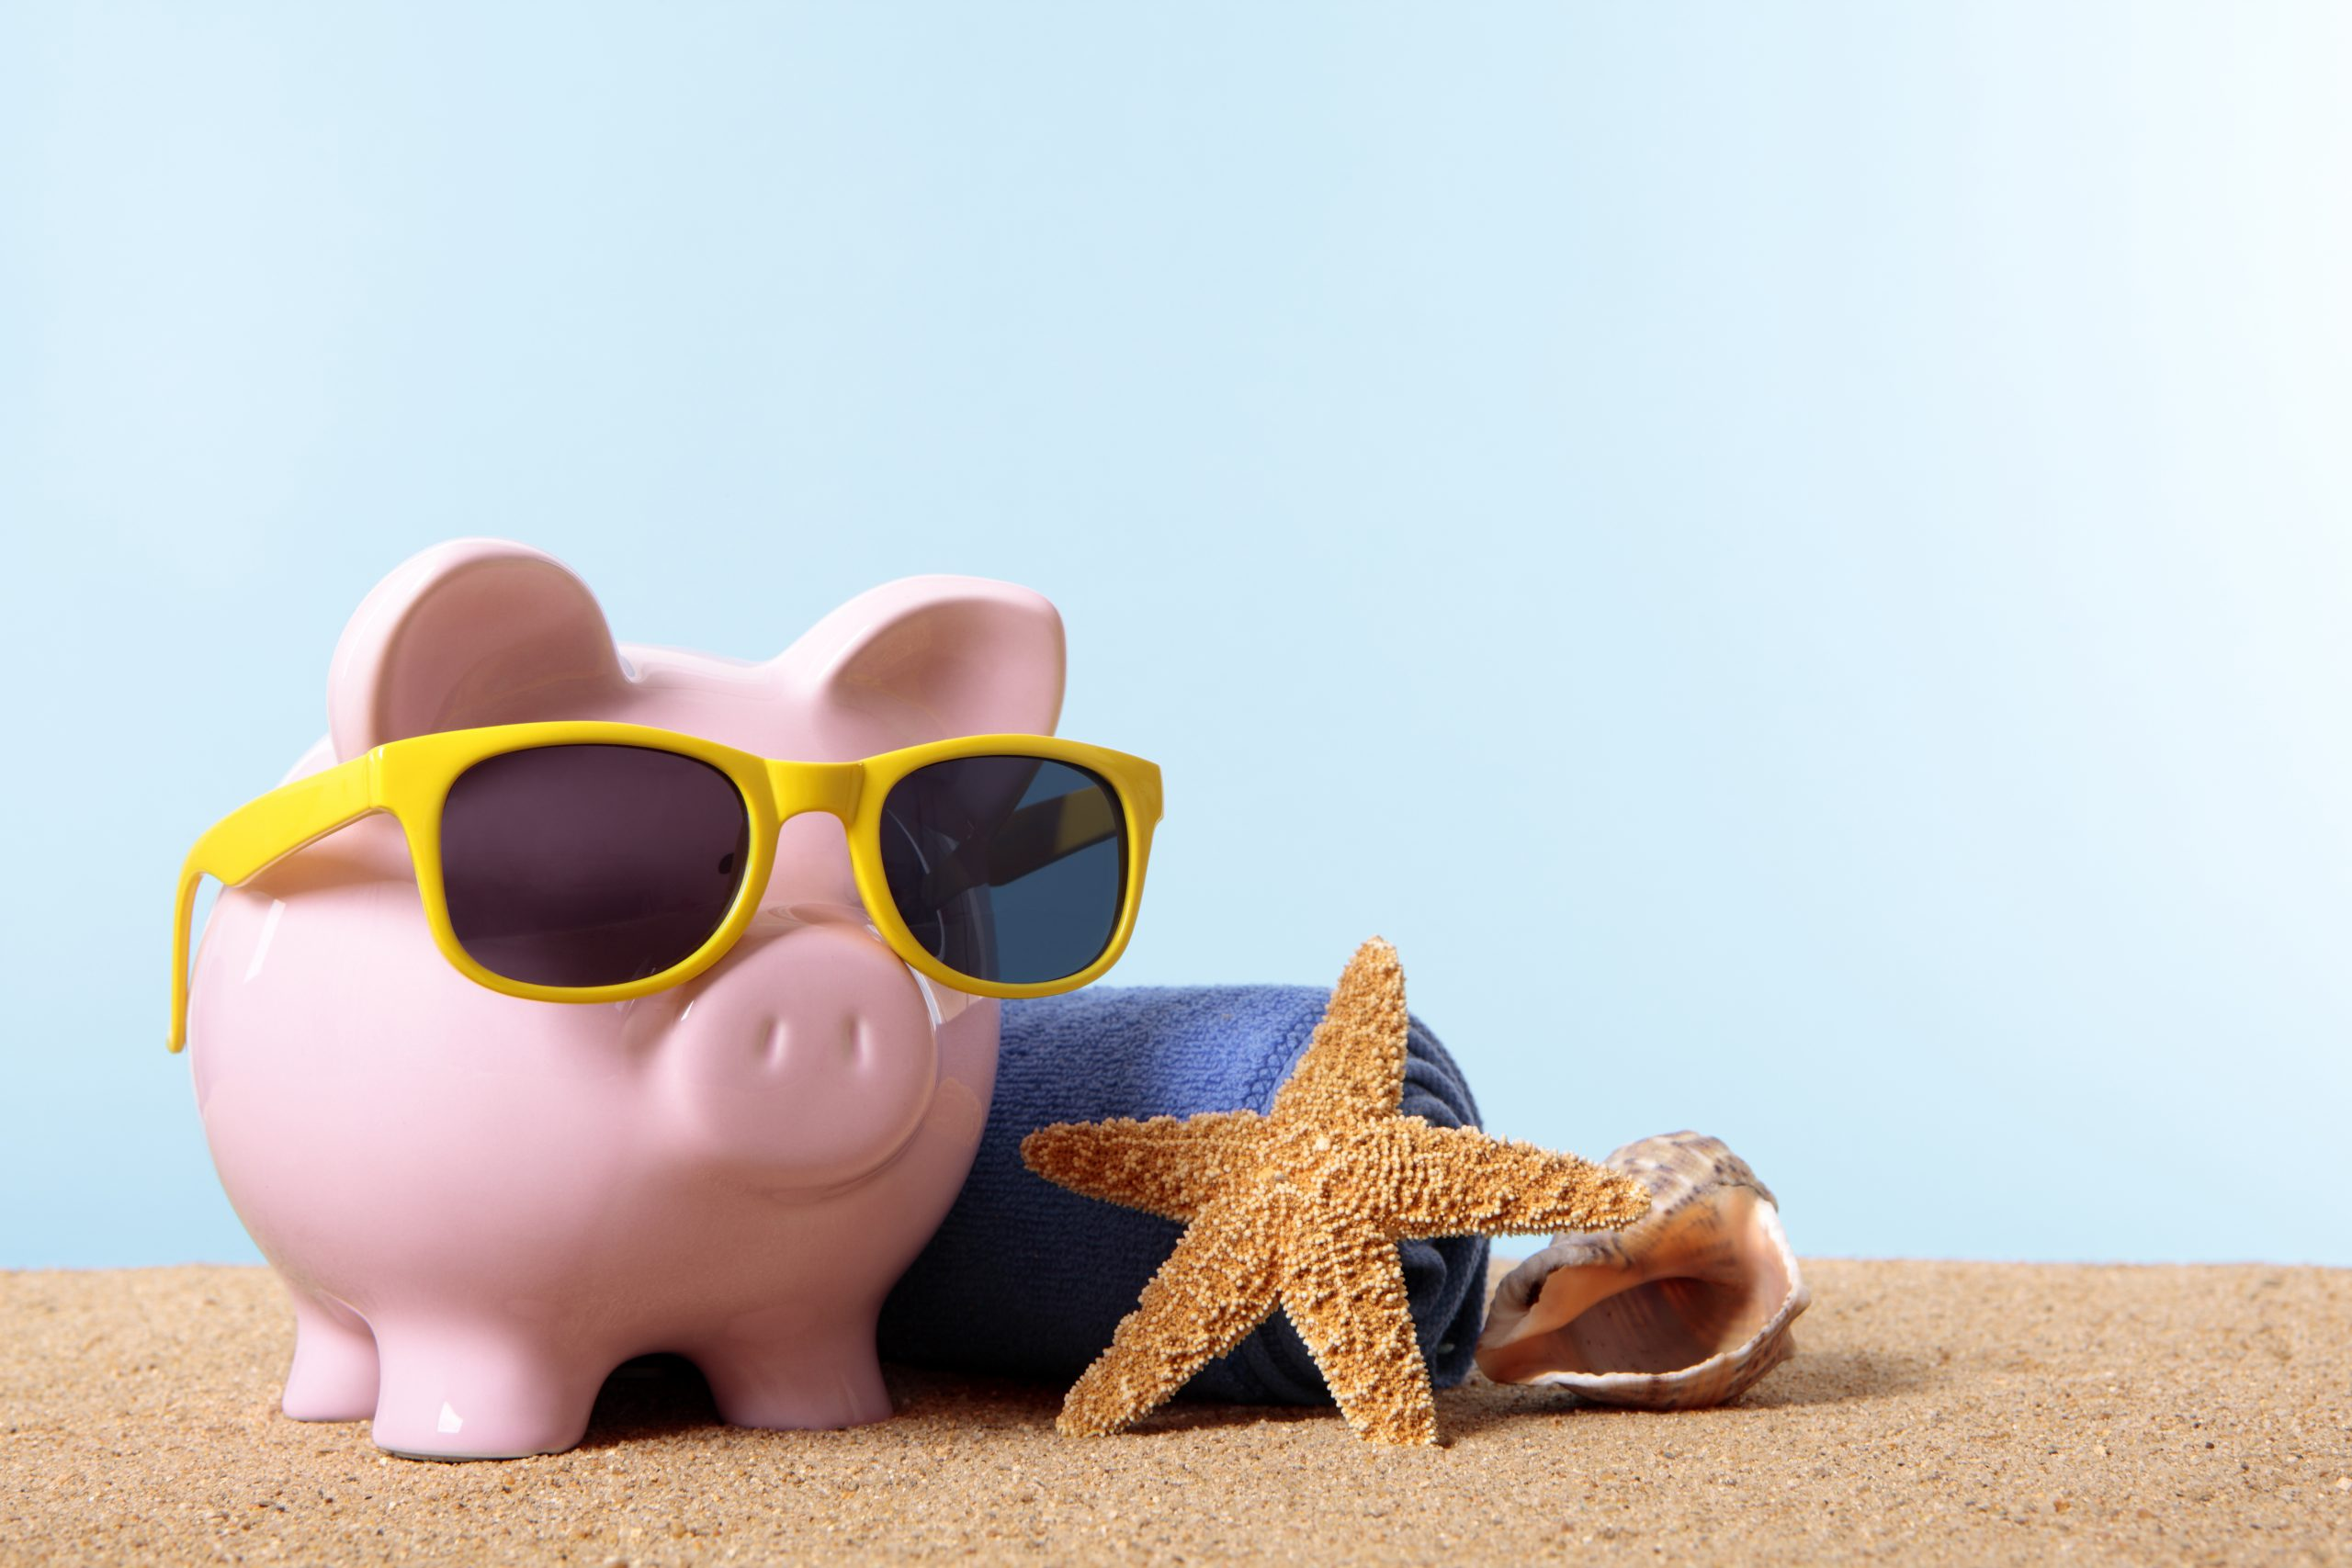 Pink piggy bank on a beach with sunglasses and beach towel.  Space for copy.